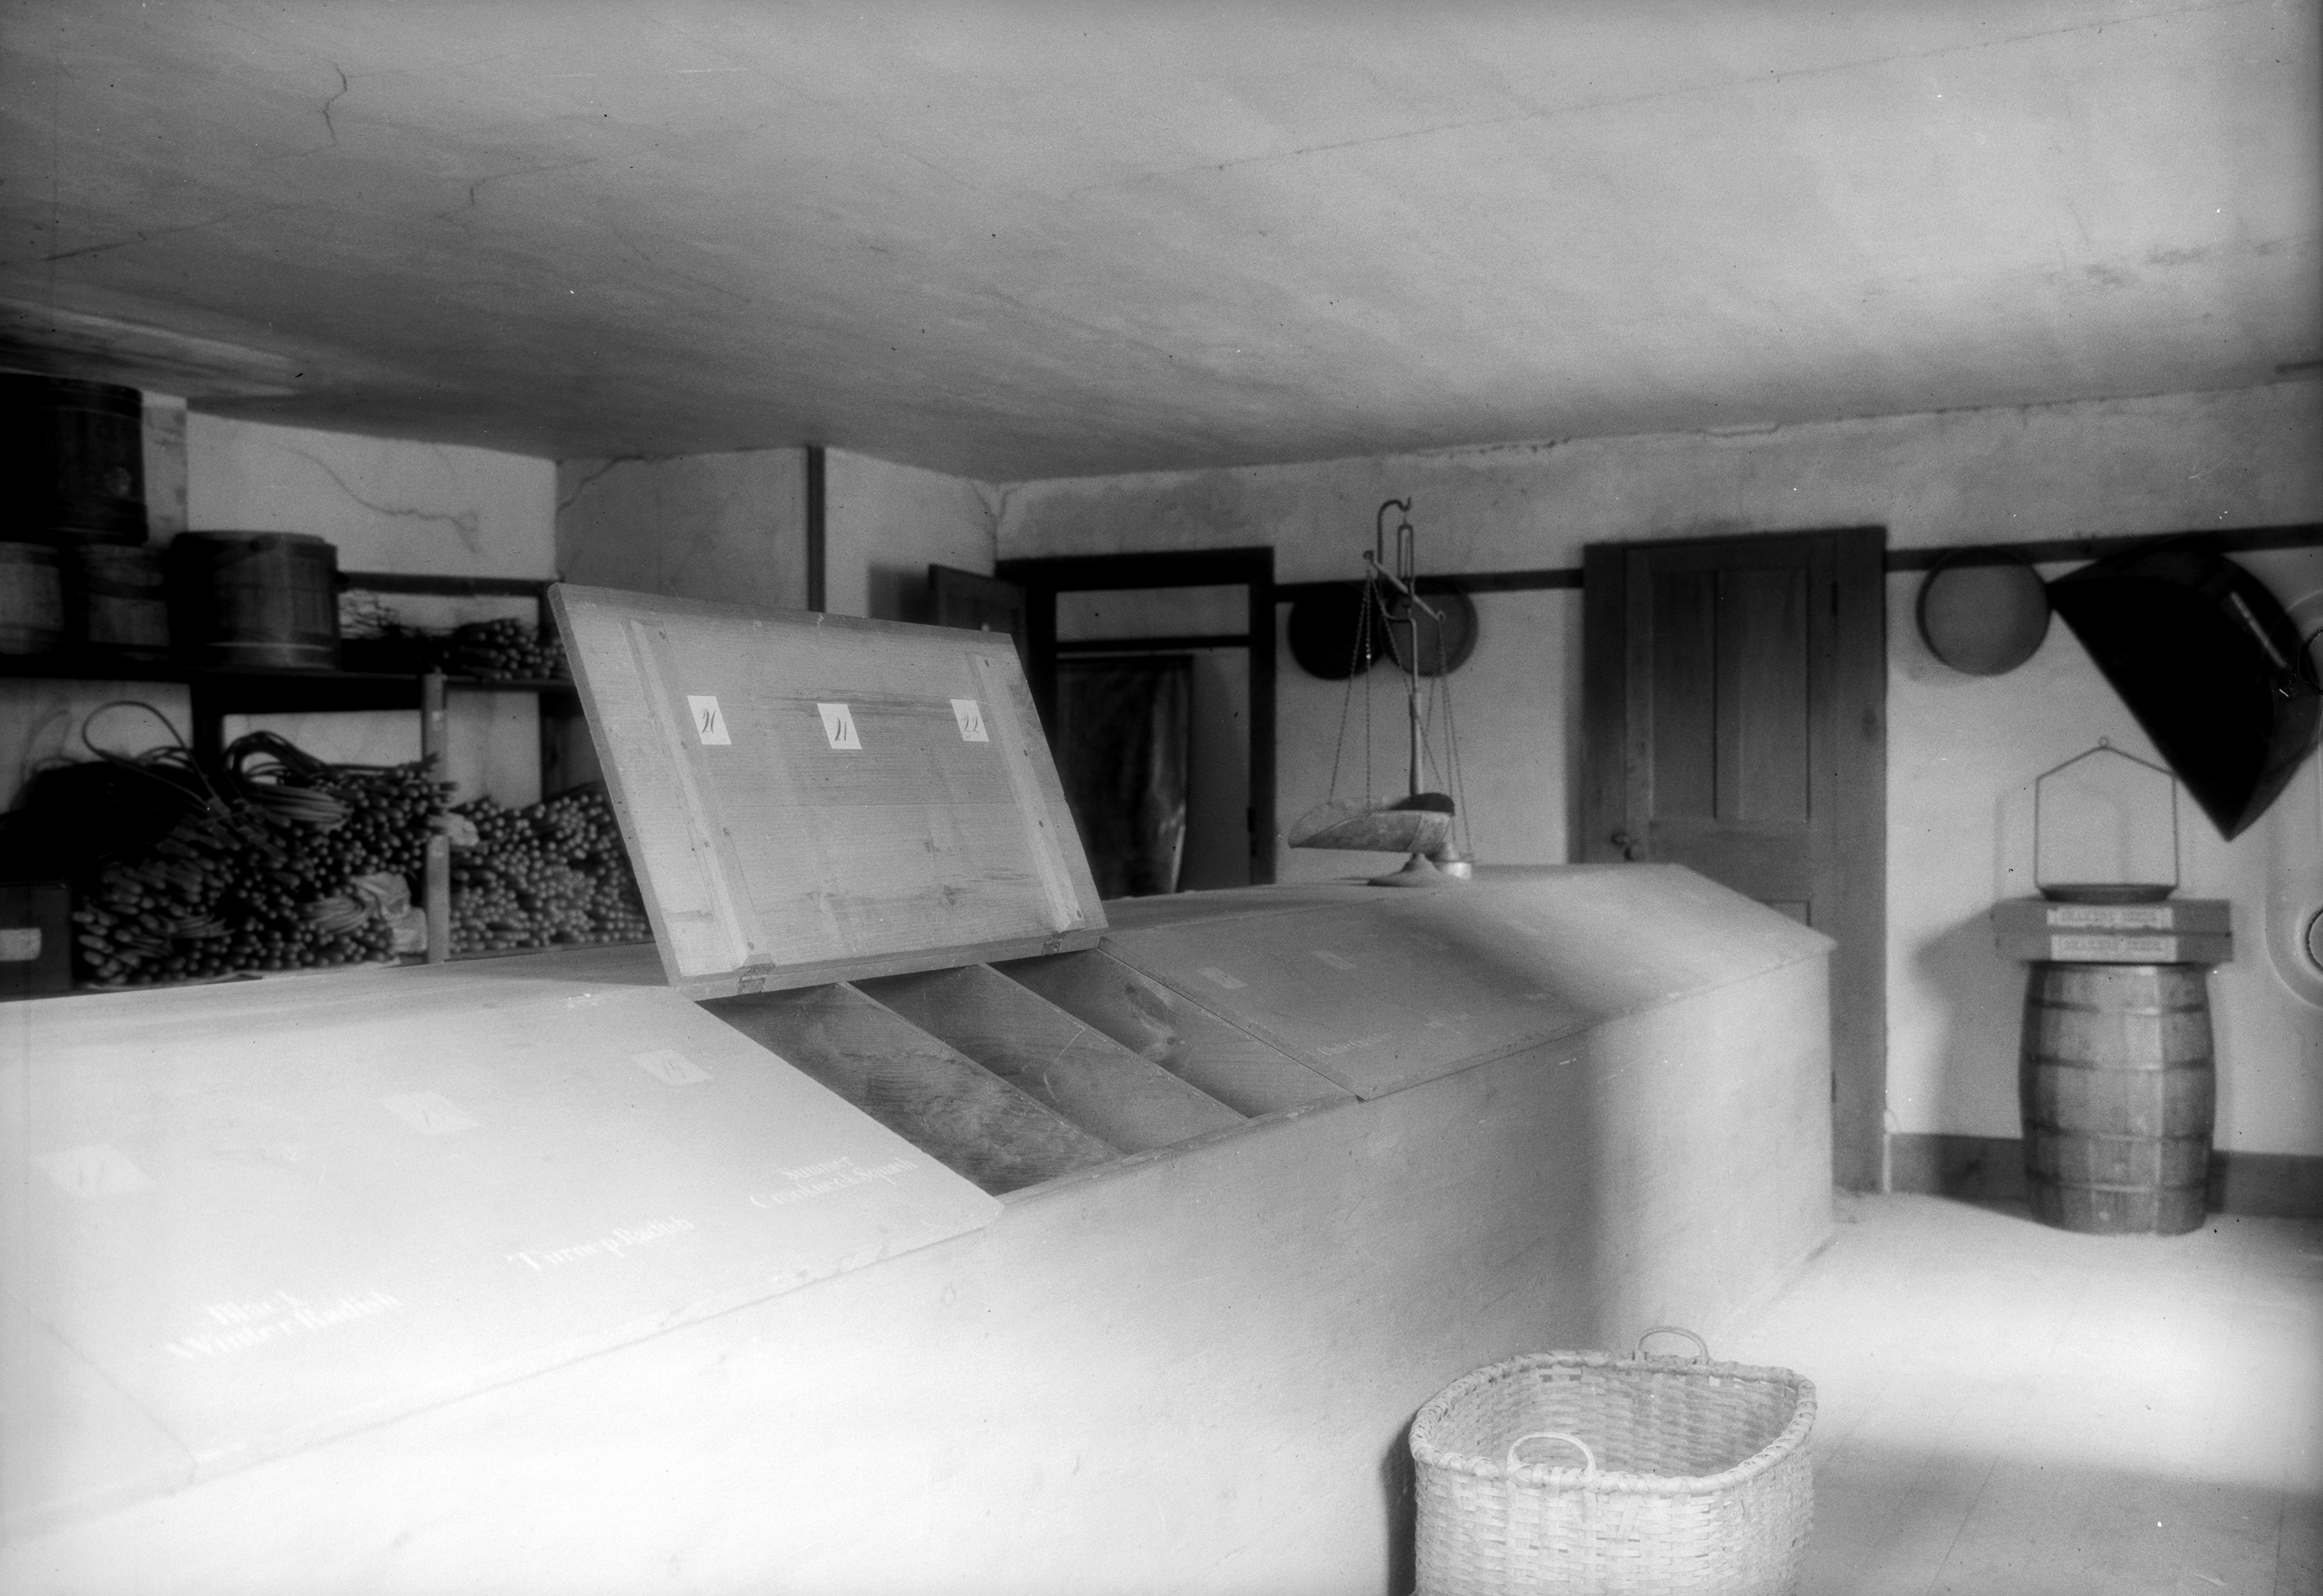 Seed Loft, Brick Shop, North Family, Mount Lebanon, NY, 1931, Historic American Buildings Survey, Charles C. Adams, photographer. Retrieved from: http://www.loc.gov/pictures/item/ny0109.photos.115496p/resource/